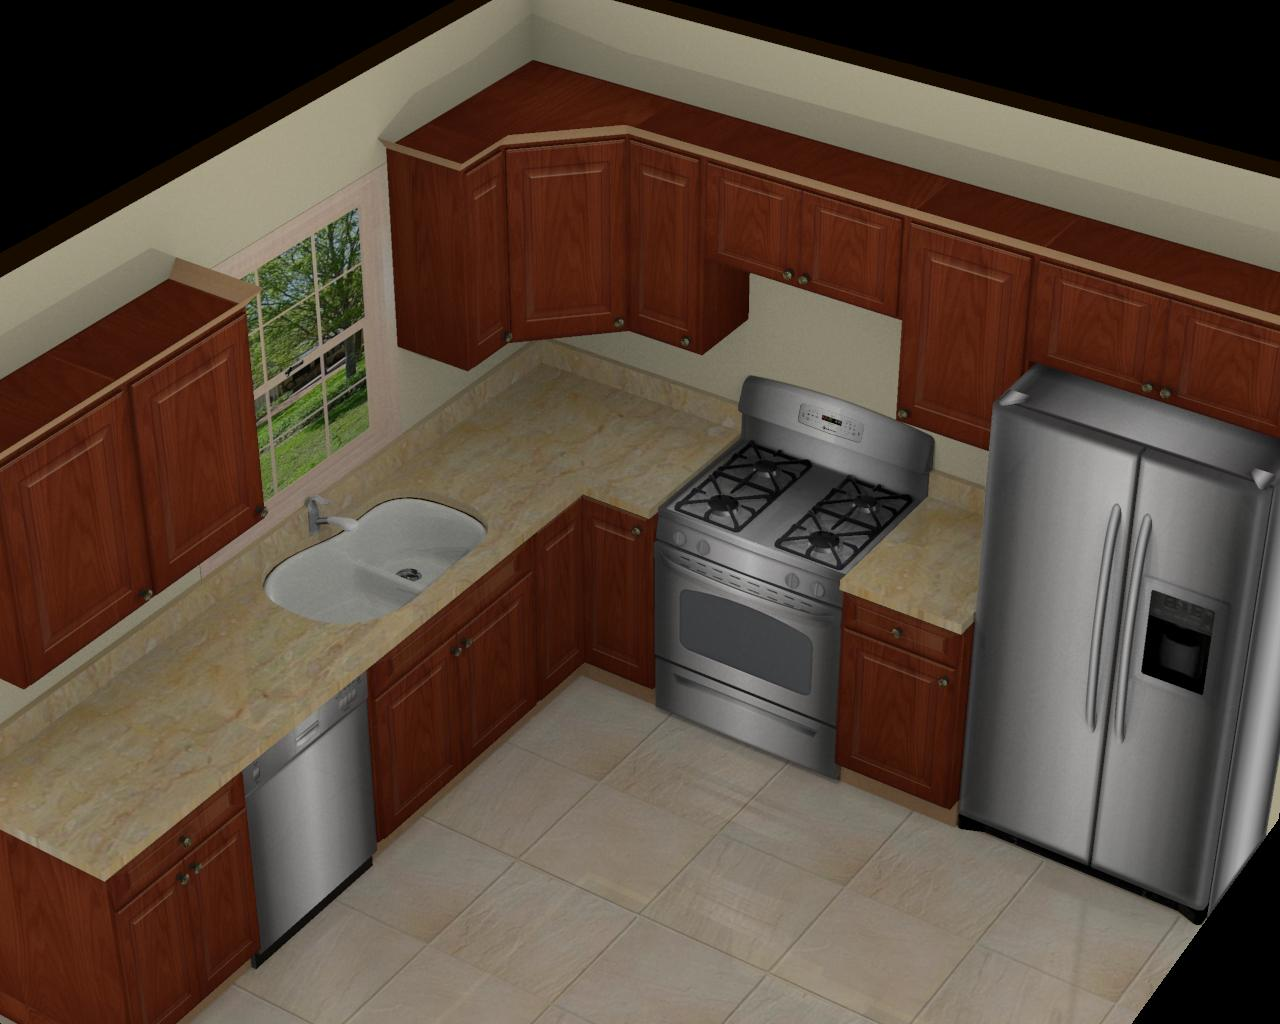 3d kitchen model design for Kitchen design planner